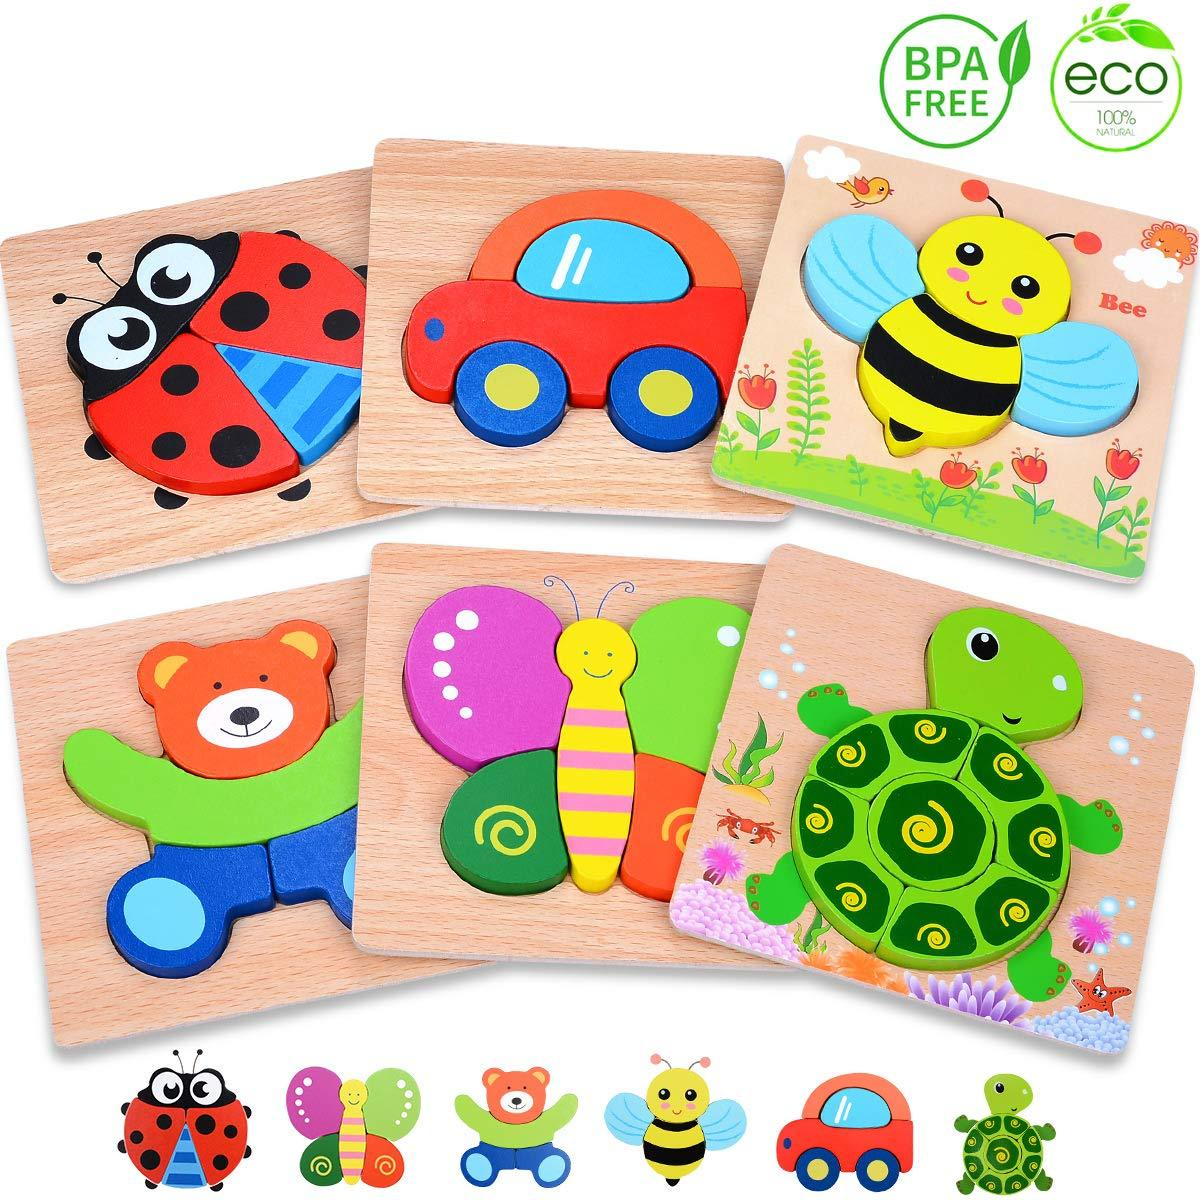 MAGIFIRE Wooden Toddler Puzzles Gifts Toys for 1 2 3 Year ...